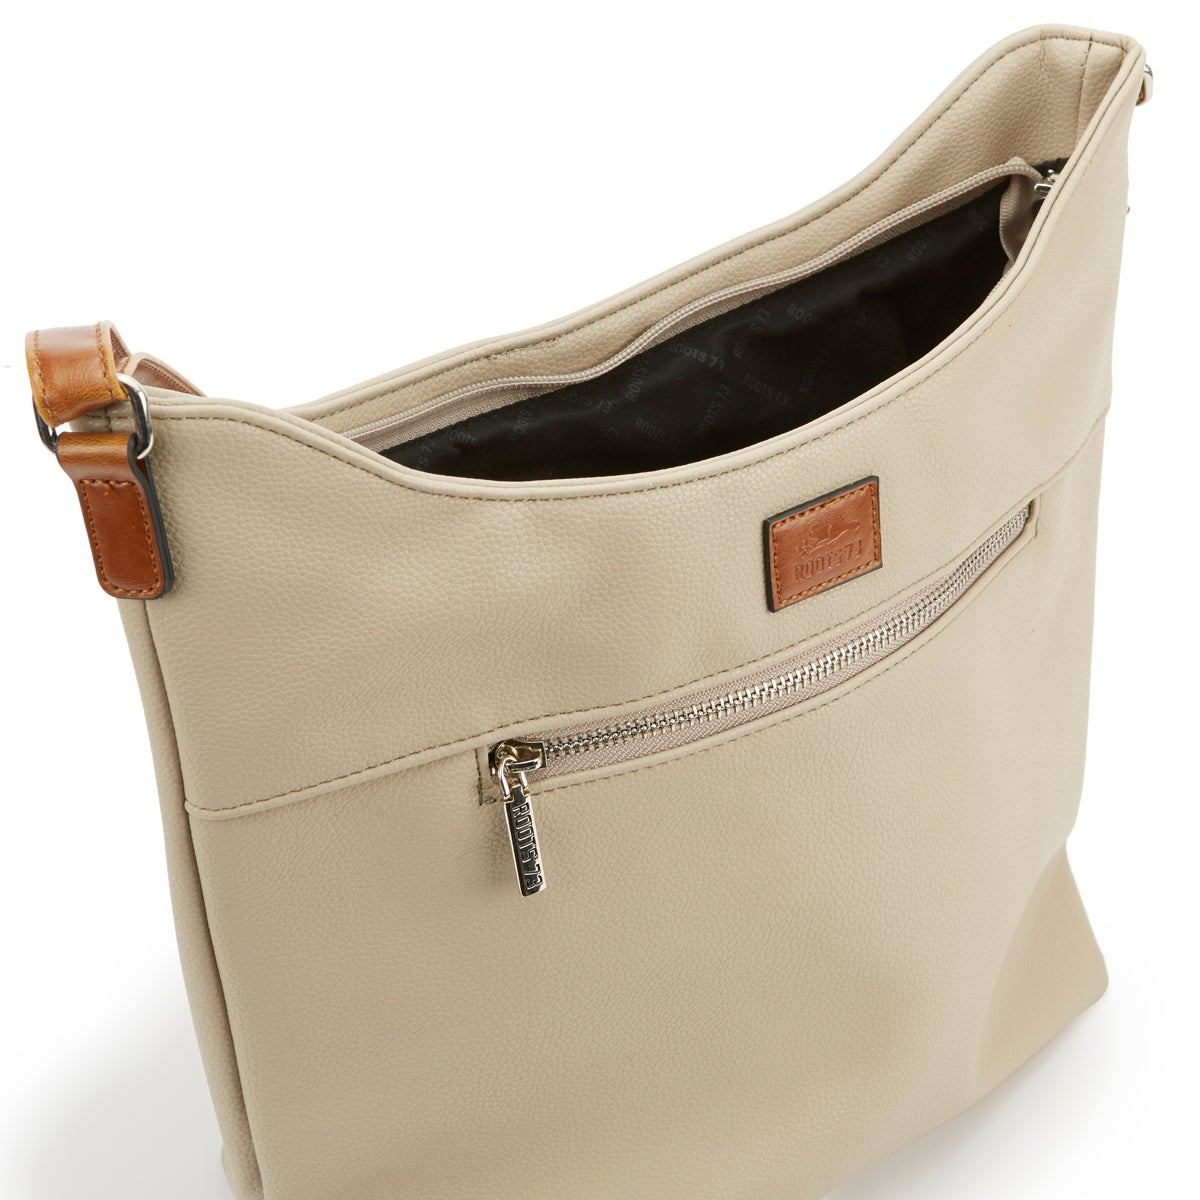 Lds Roots73 stn north/south zip hobo bag